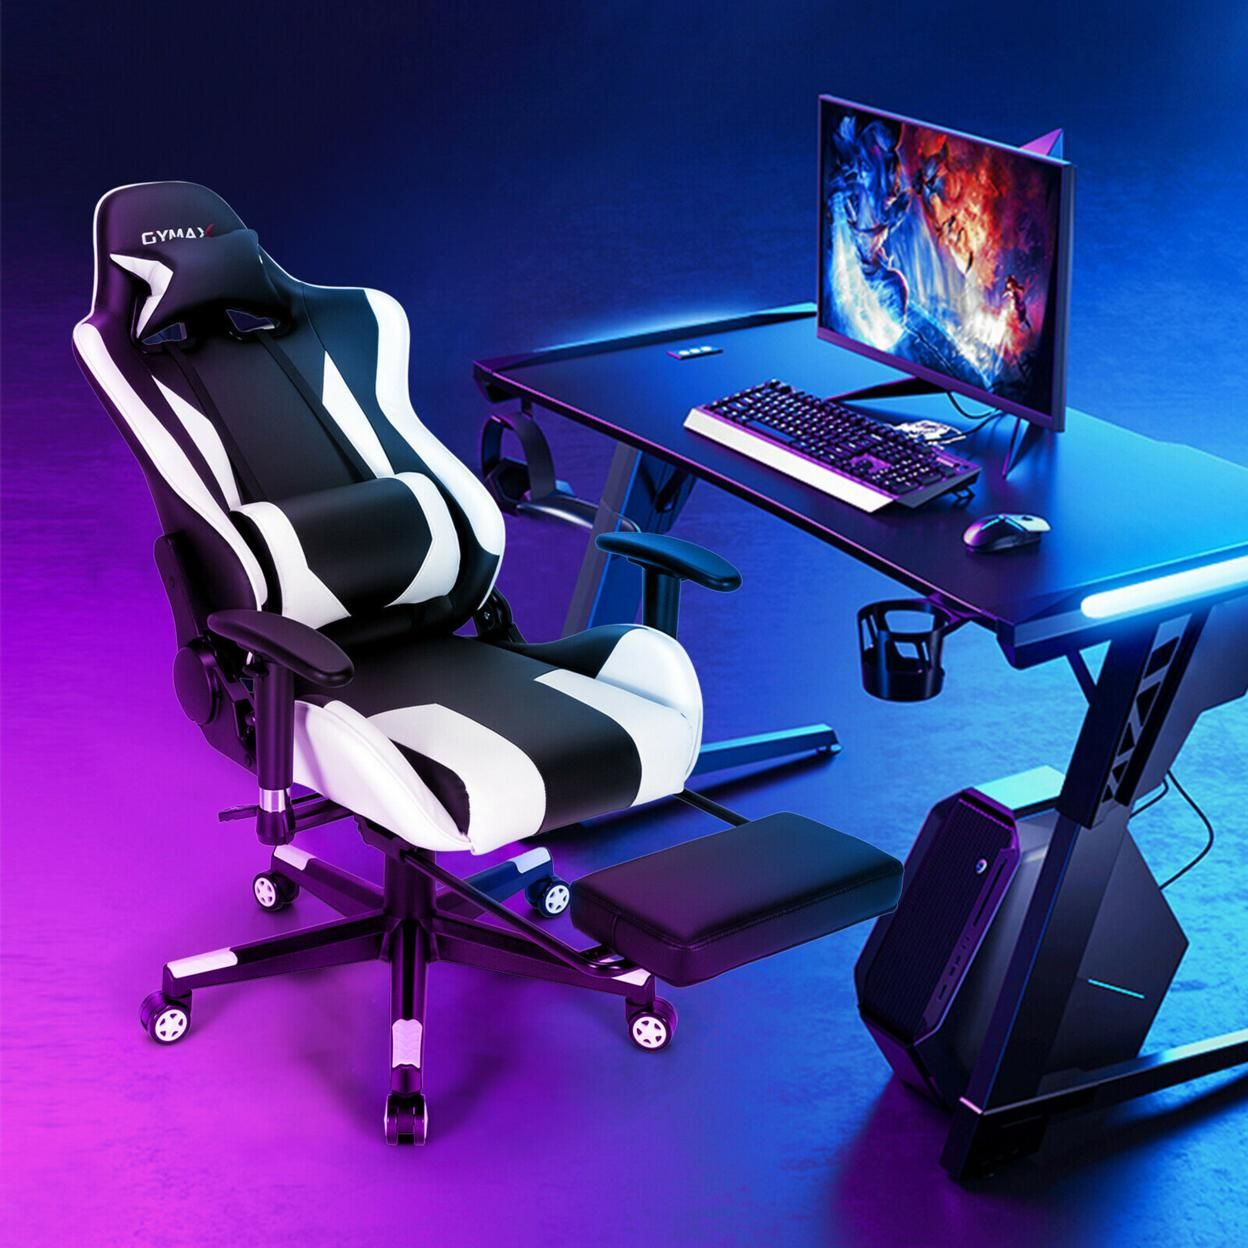 Gymax Massage Gaming Chair Adjustable Swivel Computer Office Chair w/ Footrest